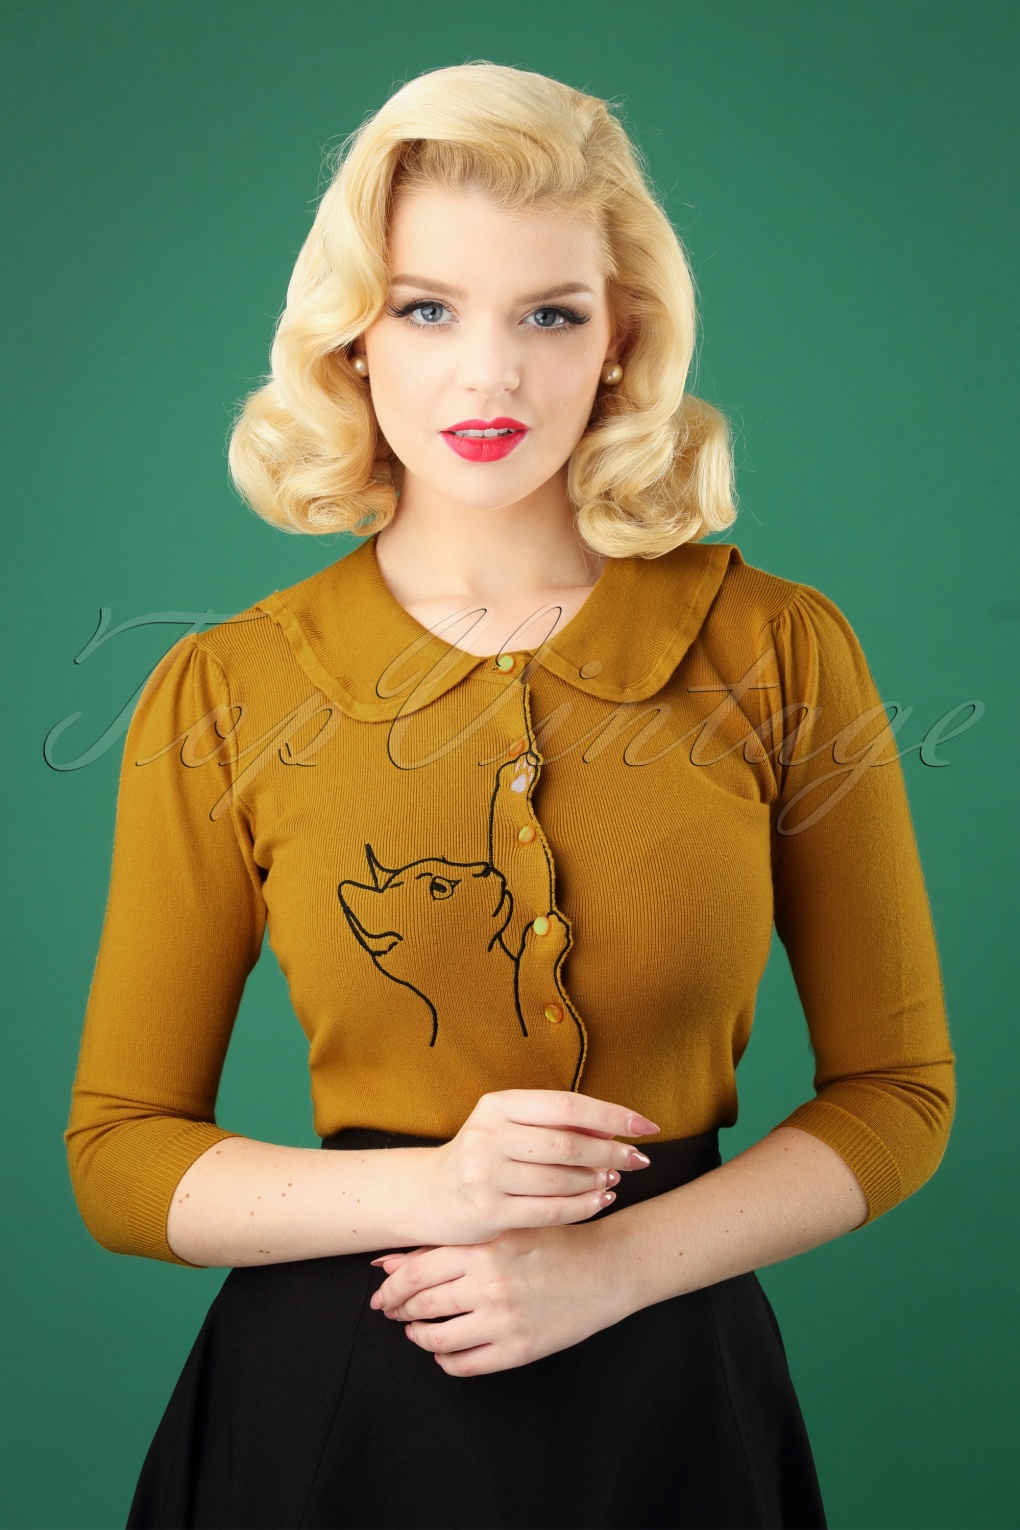 Vintage Sweaters: Cable Knit, Fair Isle Cardigans & Sweaters 60s Cat Scallop Collar Cardigan in Mustard £37.12 AT vintagedancer.com